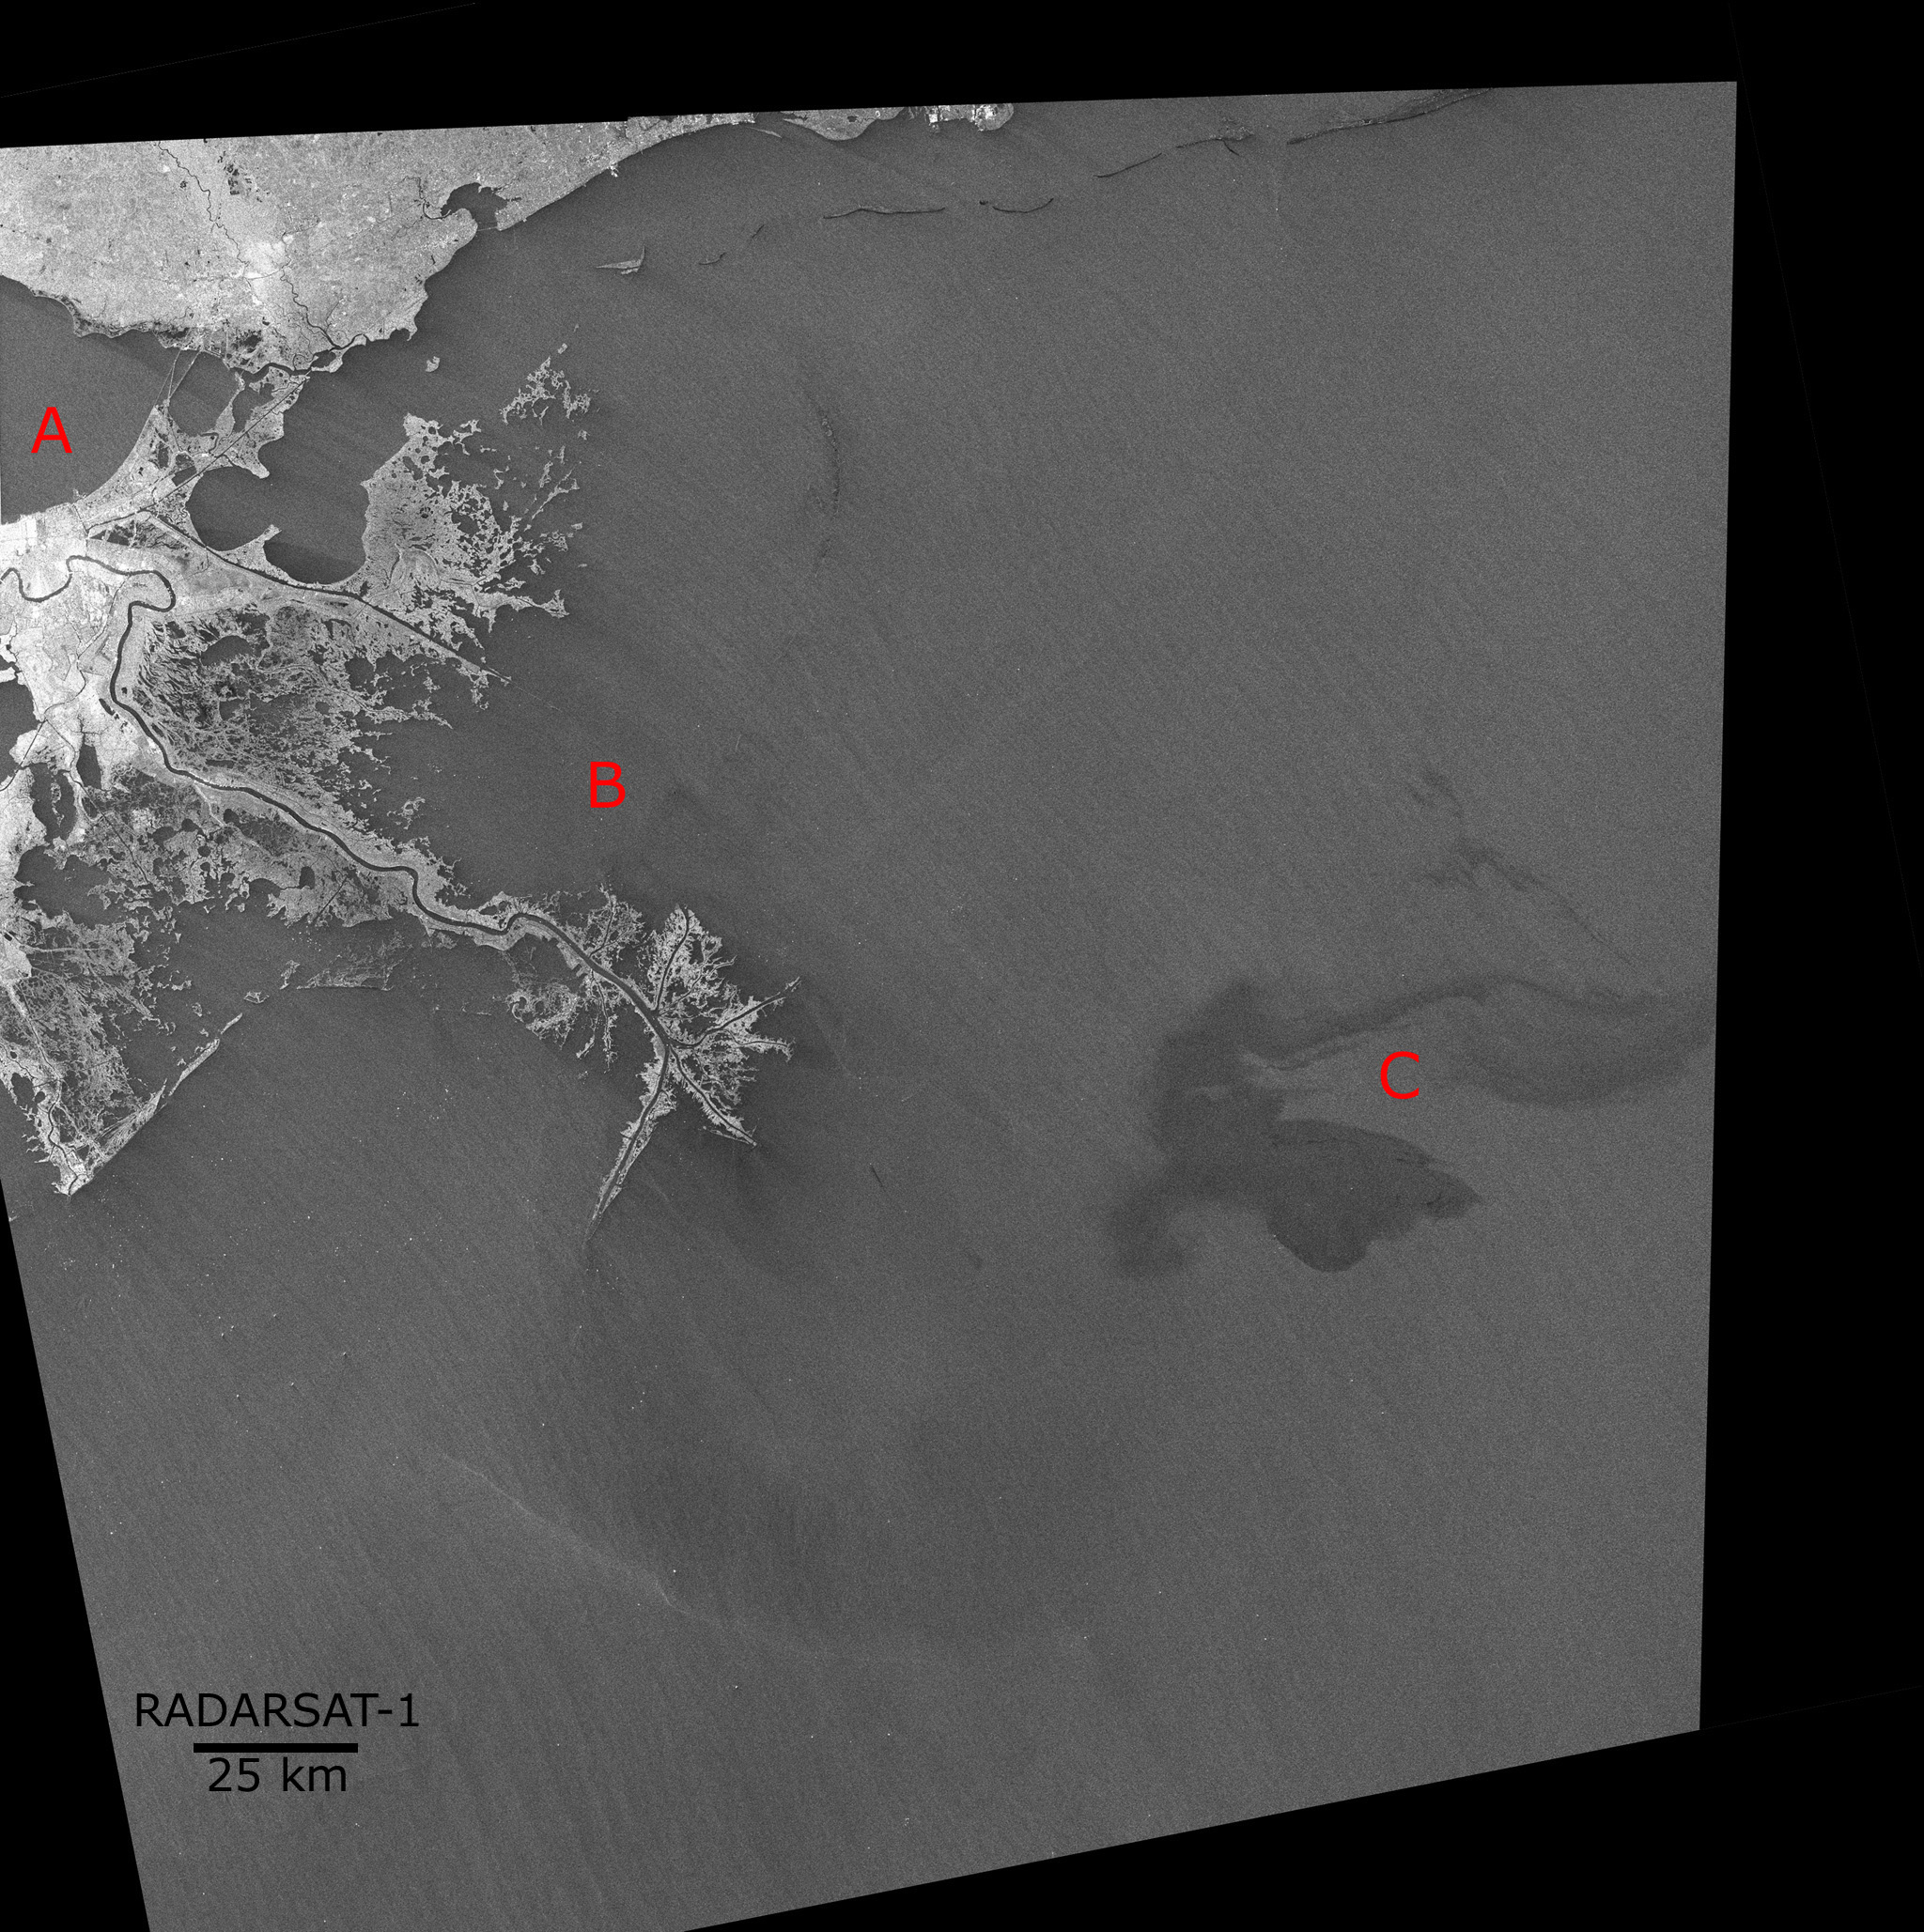 Map showing the oil spill in the Gulf of Mexico - Image acquired by RADARSAT-1 ScanSAR April 26, 2010.